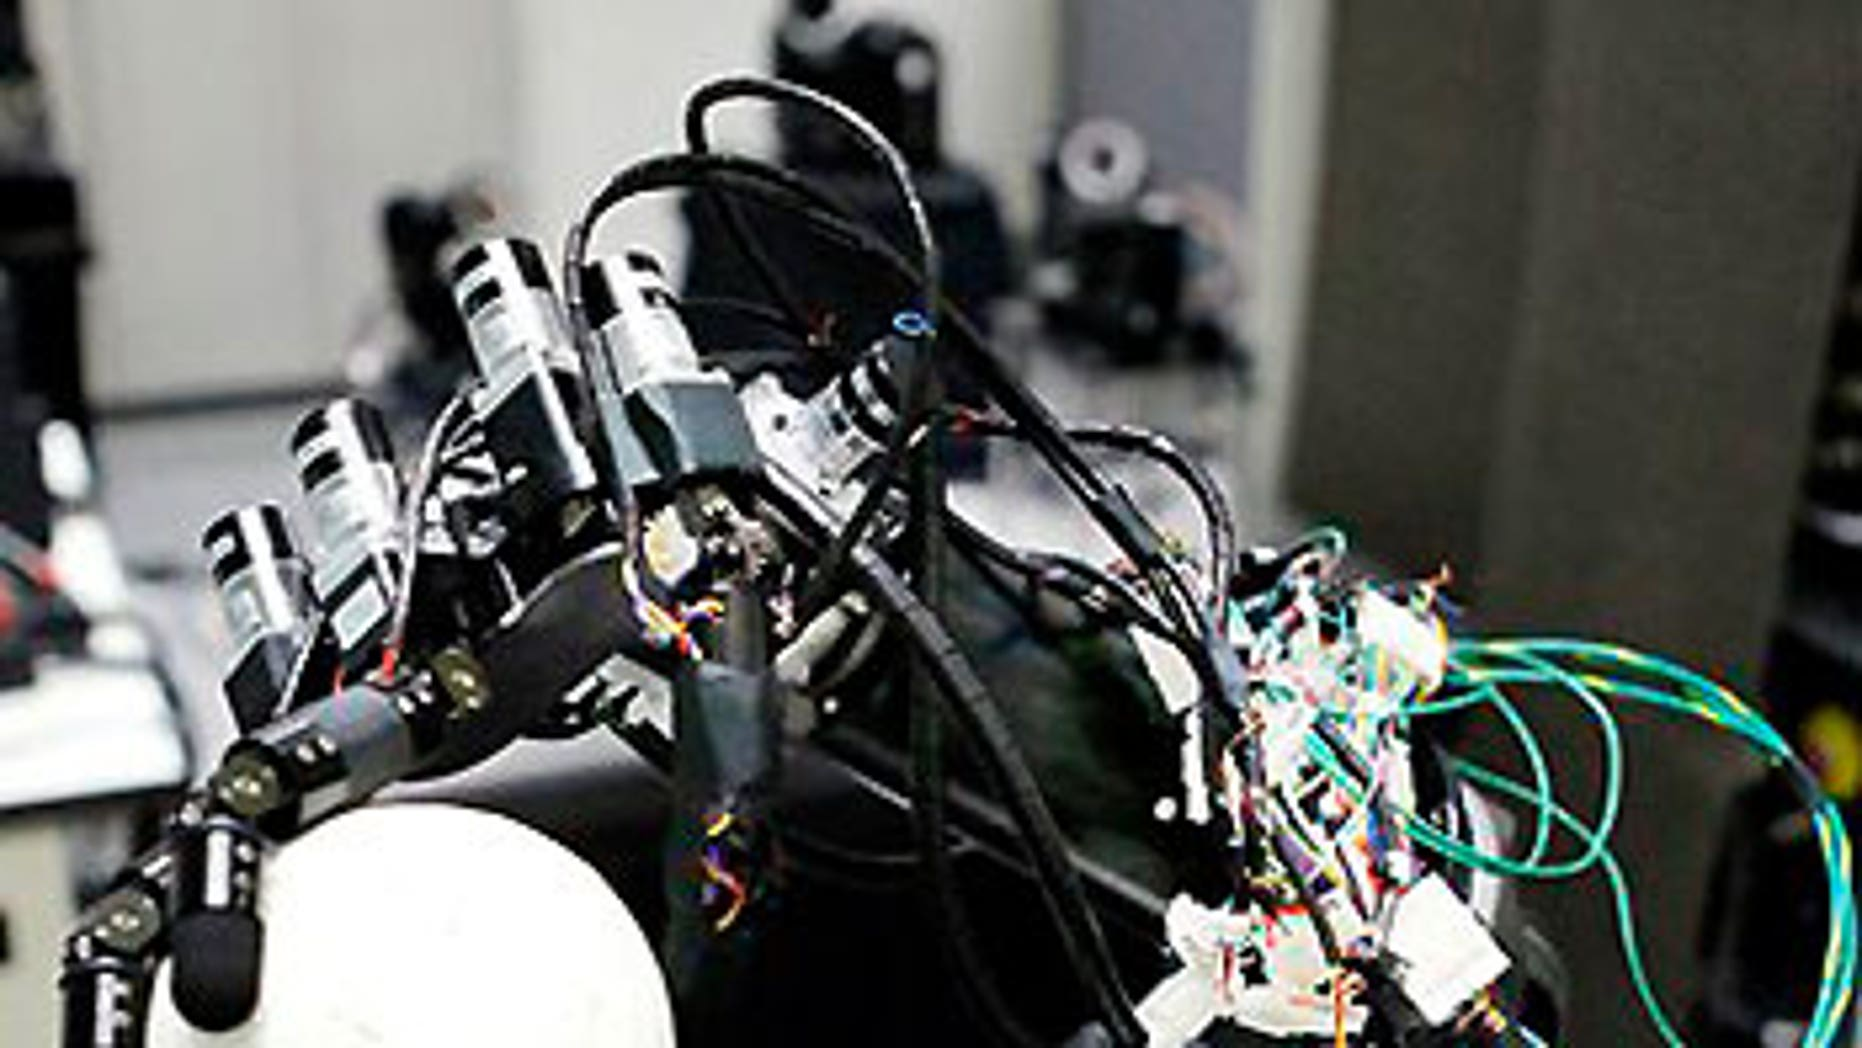 July 24: A pitching robot grips a ball made of polystyrene during its demonstration at the University of Tokyo.